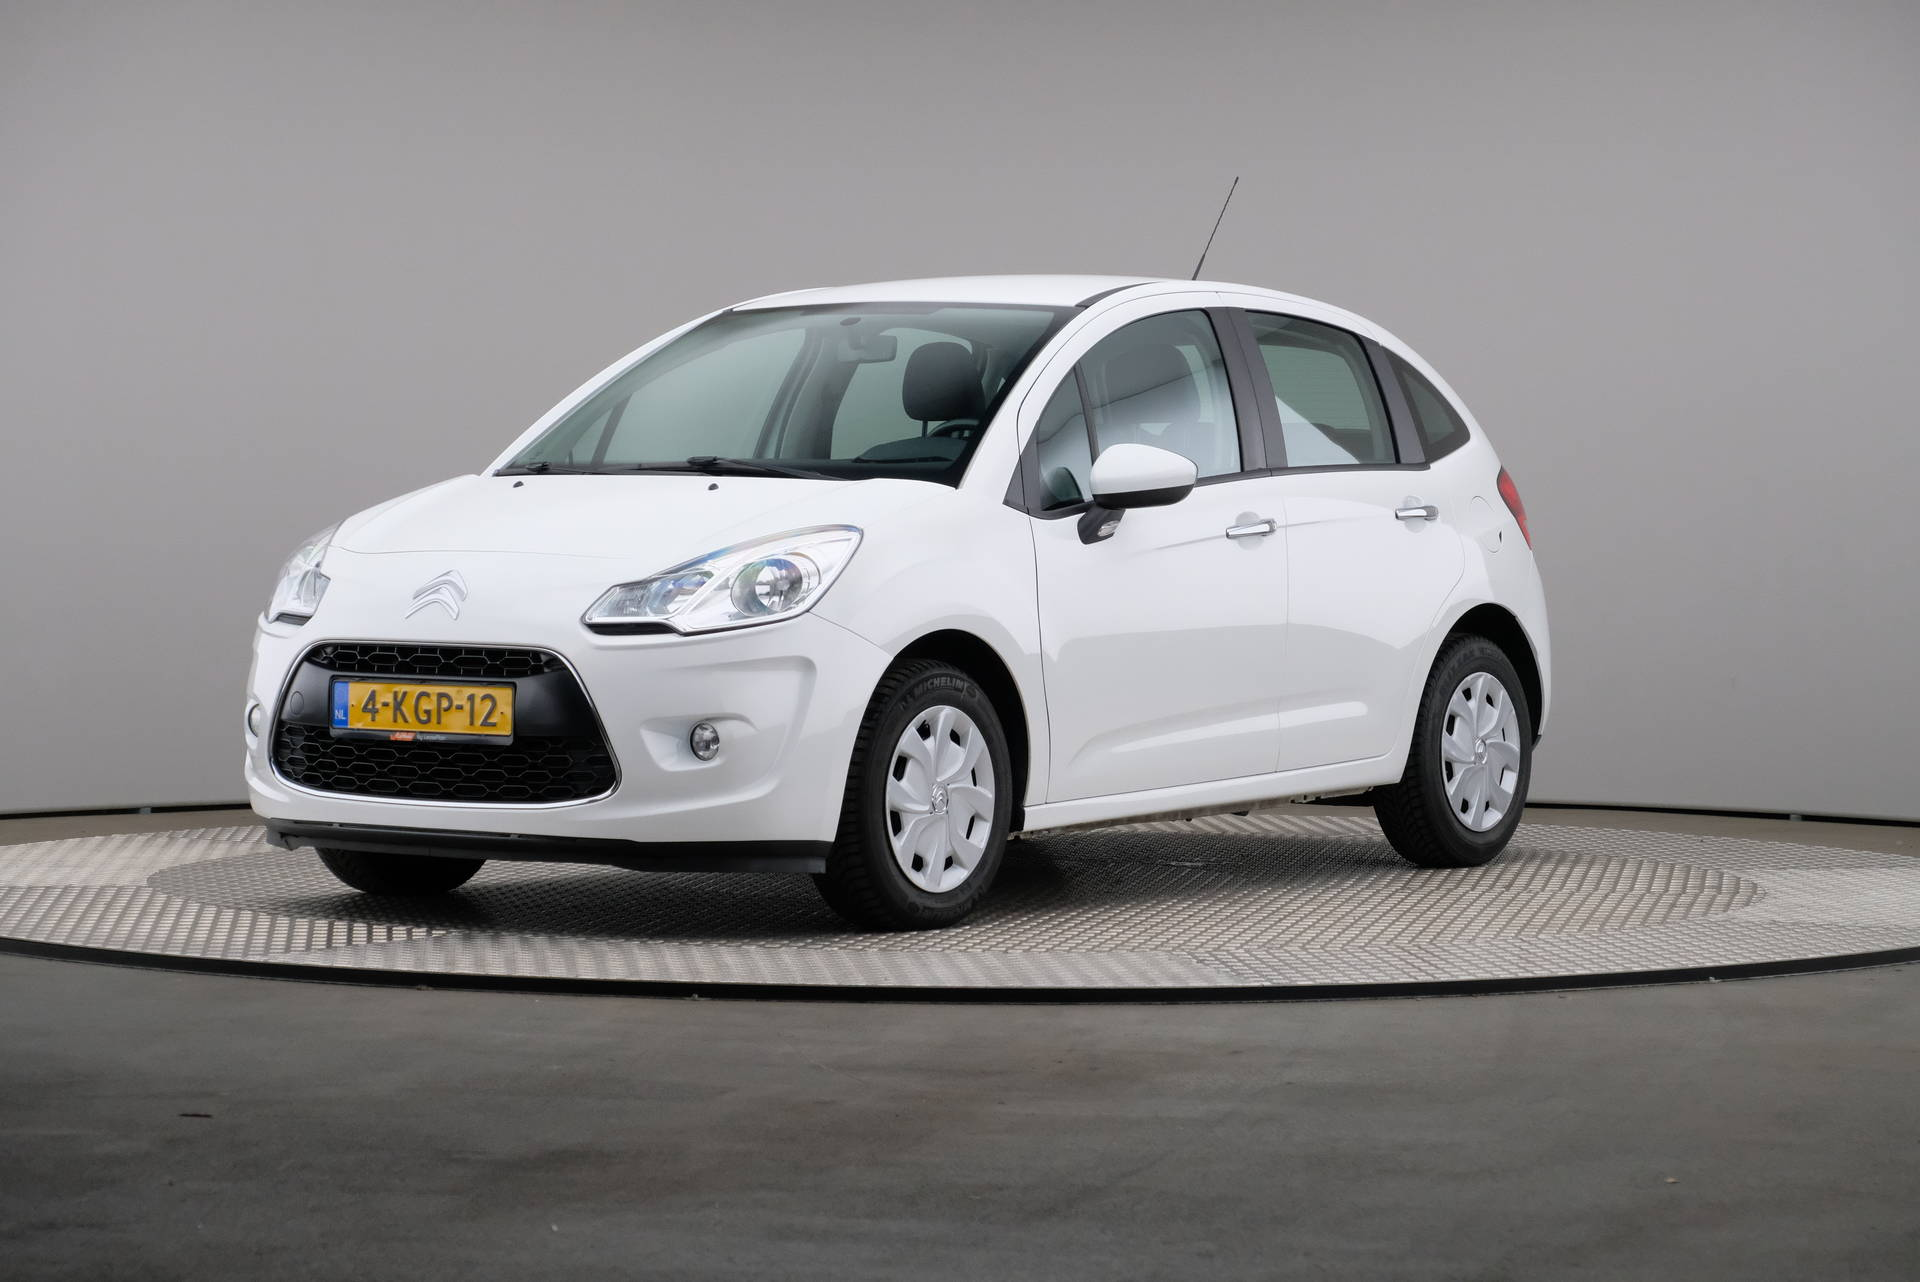 Citroën C3 1.4 e-HDi Tendance, Automaat, Airconditioning, Cruise Control, 360-image0